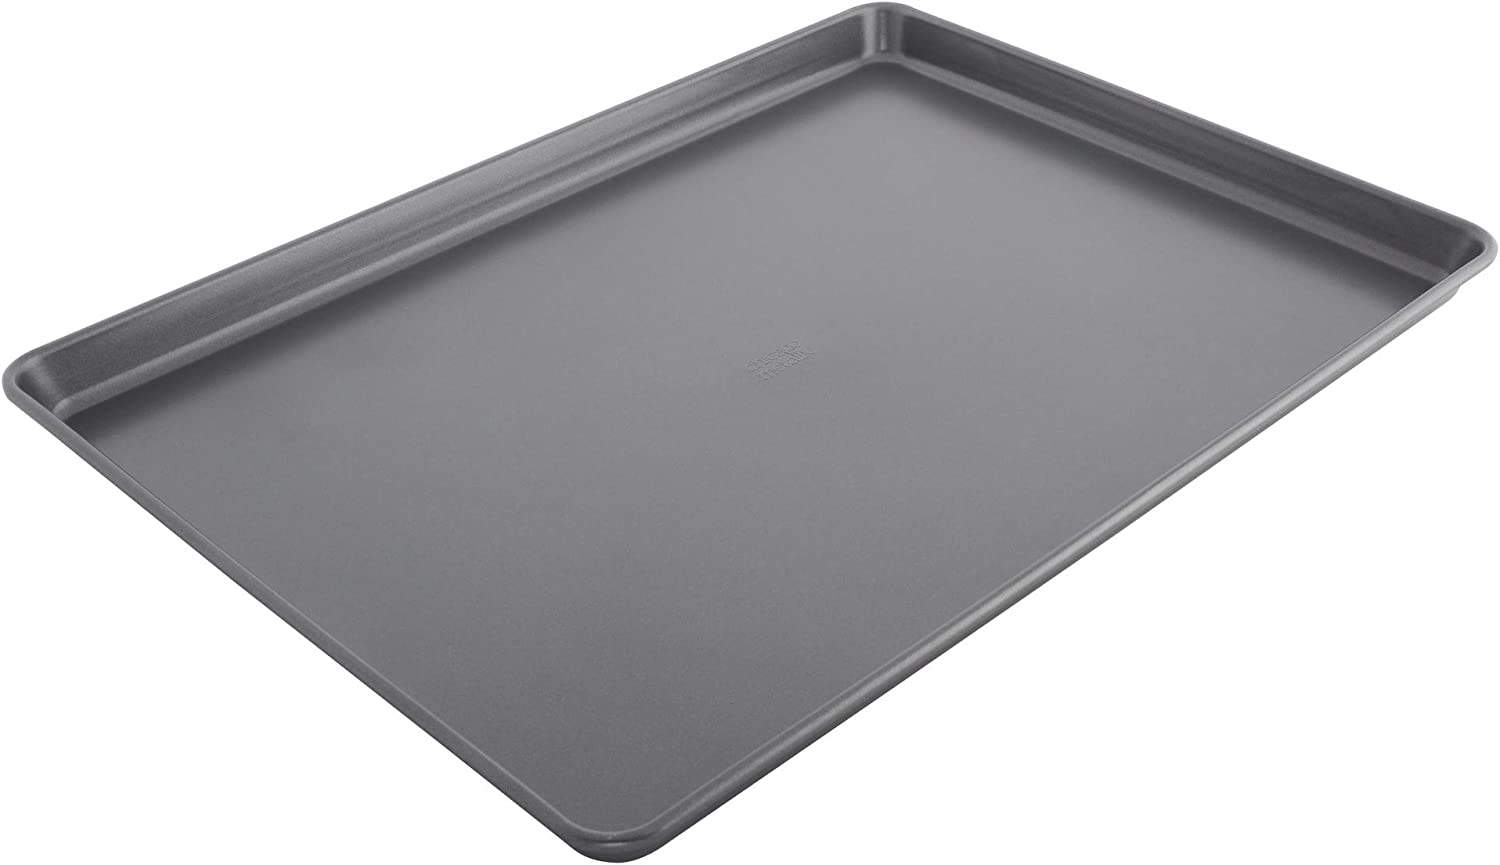 "Chicago Metallic 5233075 Non-Stick Extra Large Cookie Baking Sheet, 15""-by-21"", Metallic Gray"